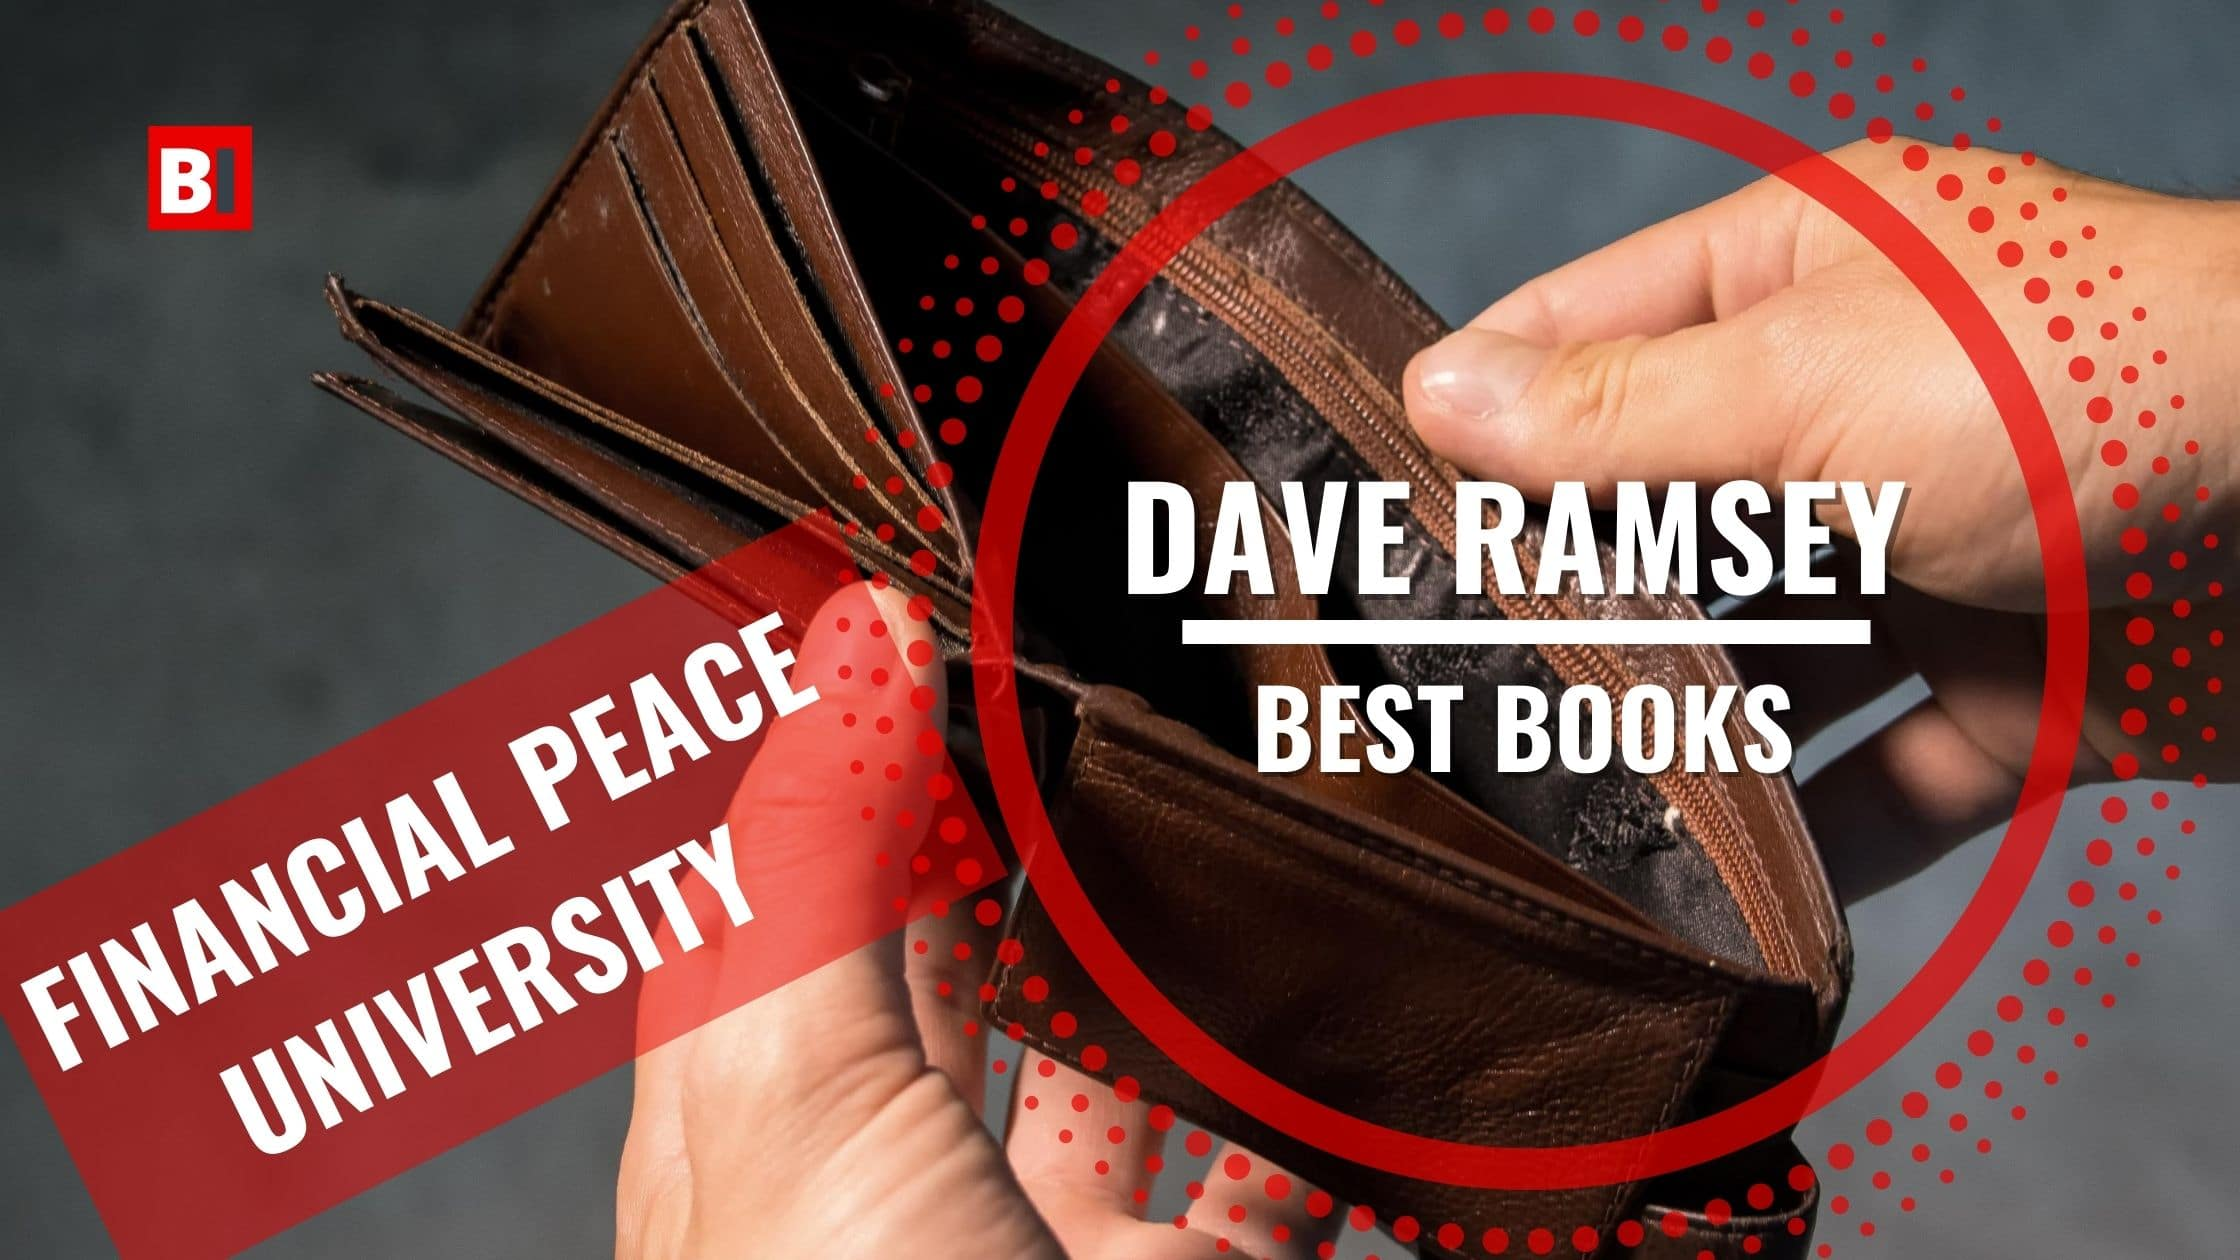 Best Books by Dave Ramsey